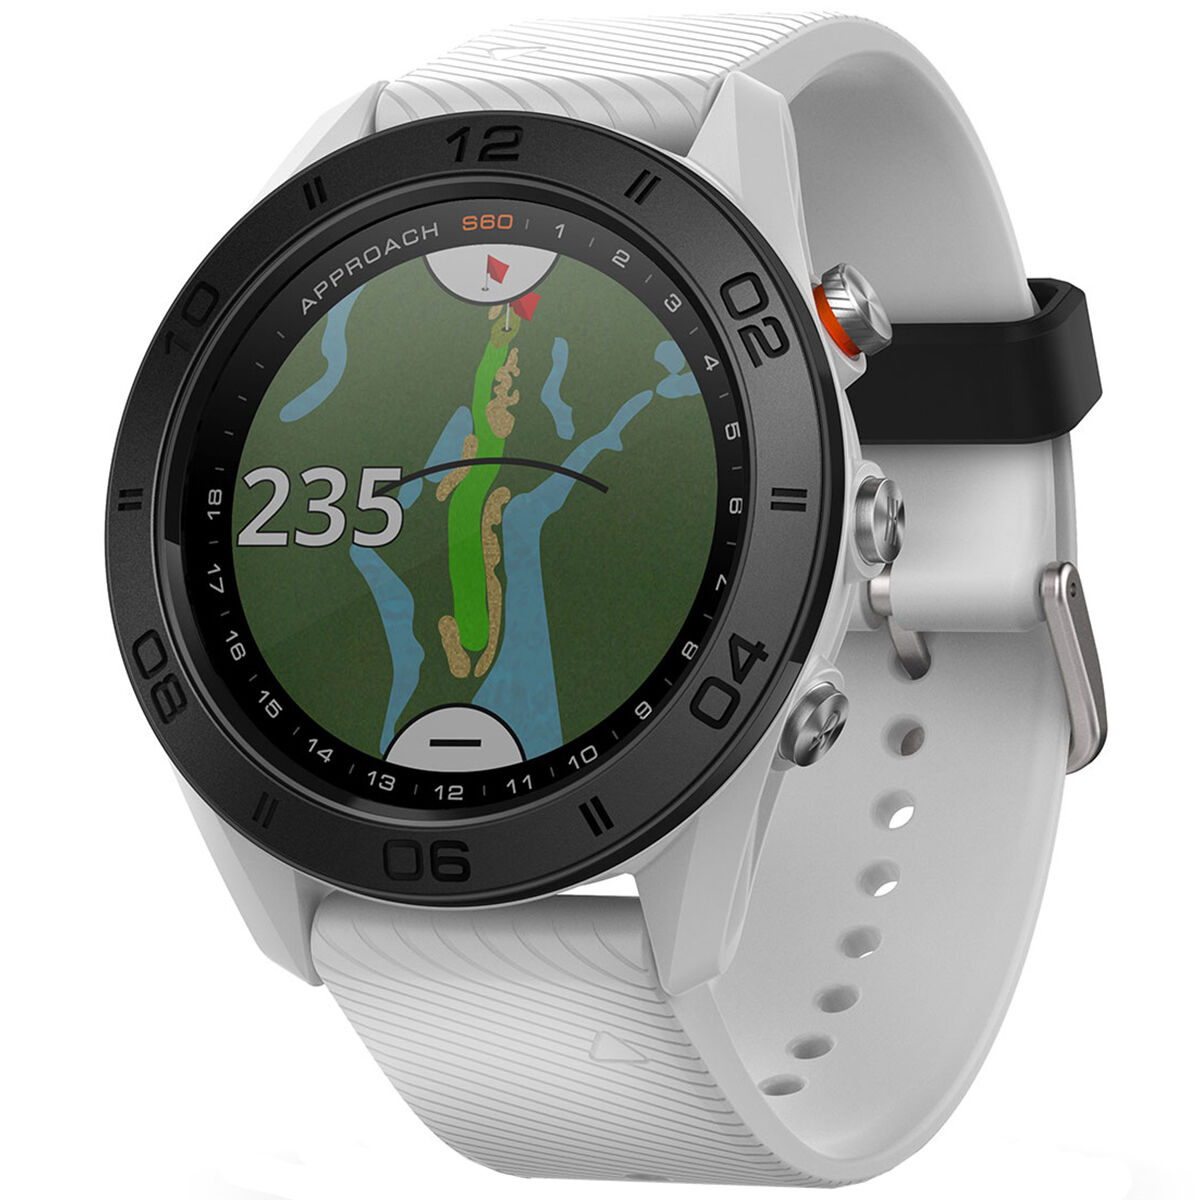 MONTRE GPS GOLF GARMIN APPROACH S60, homme, Blanc